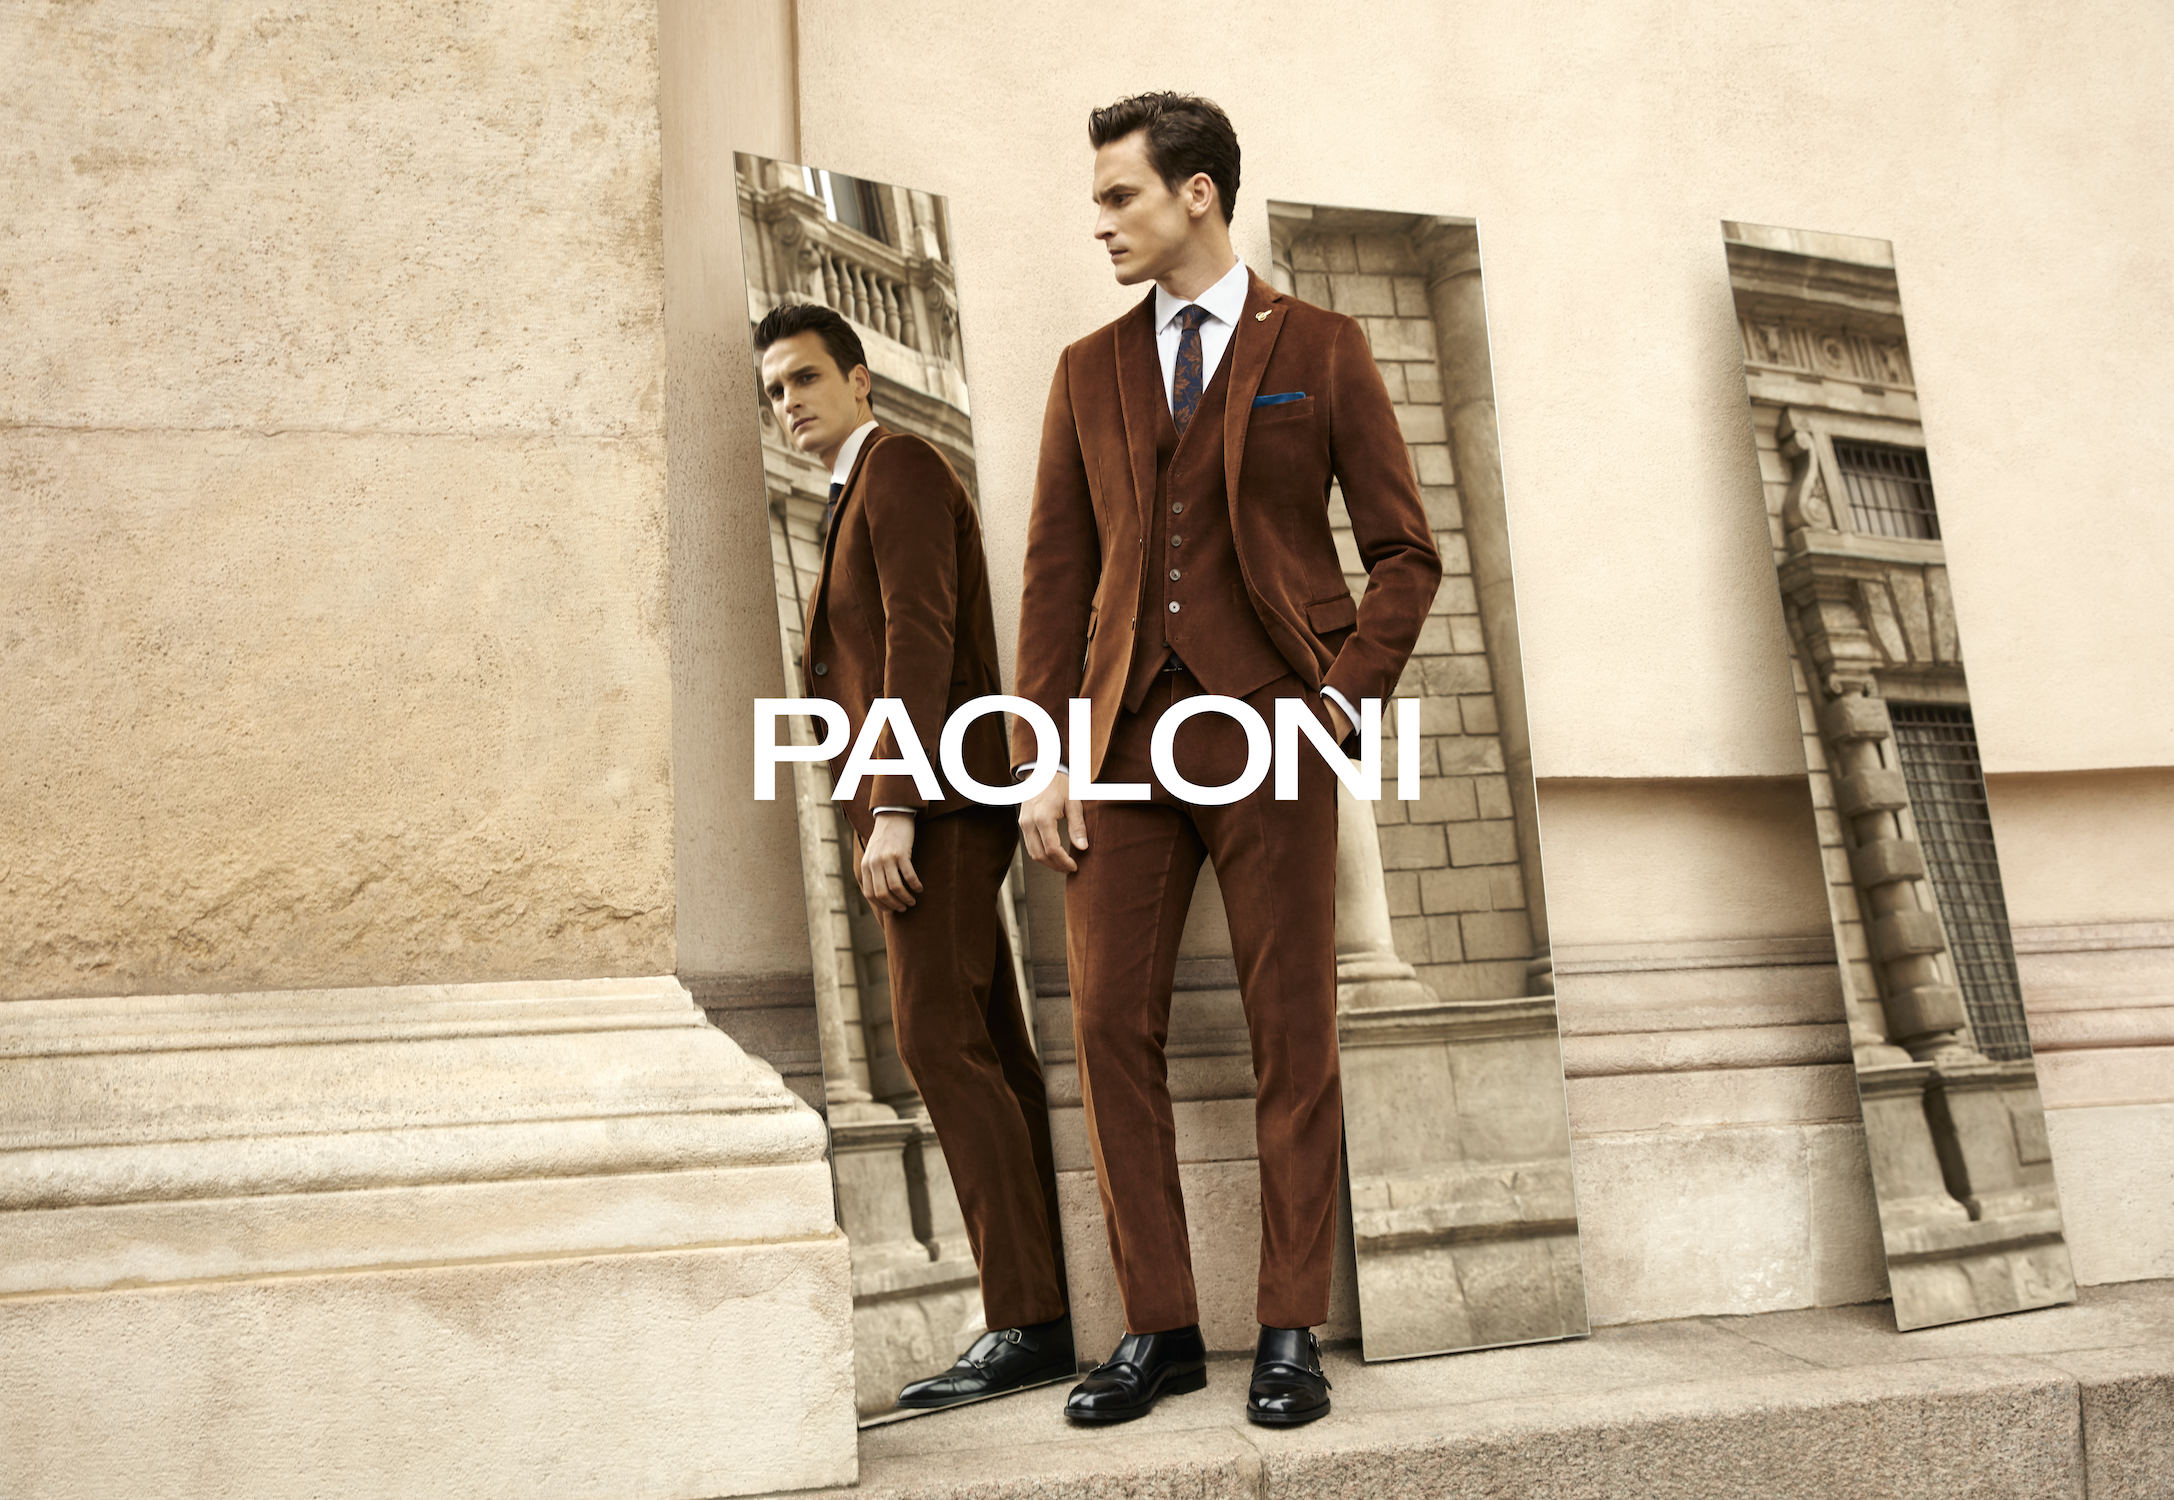 Paoloni ADV 2 0339.png